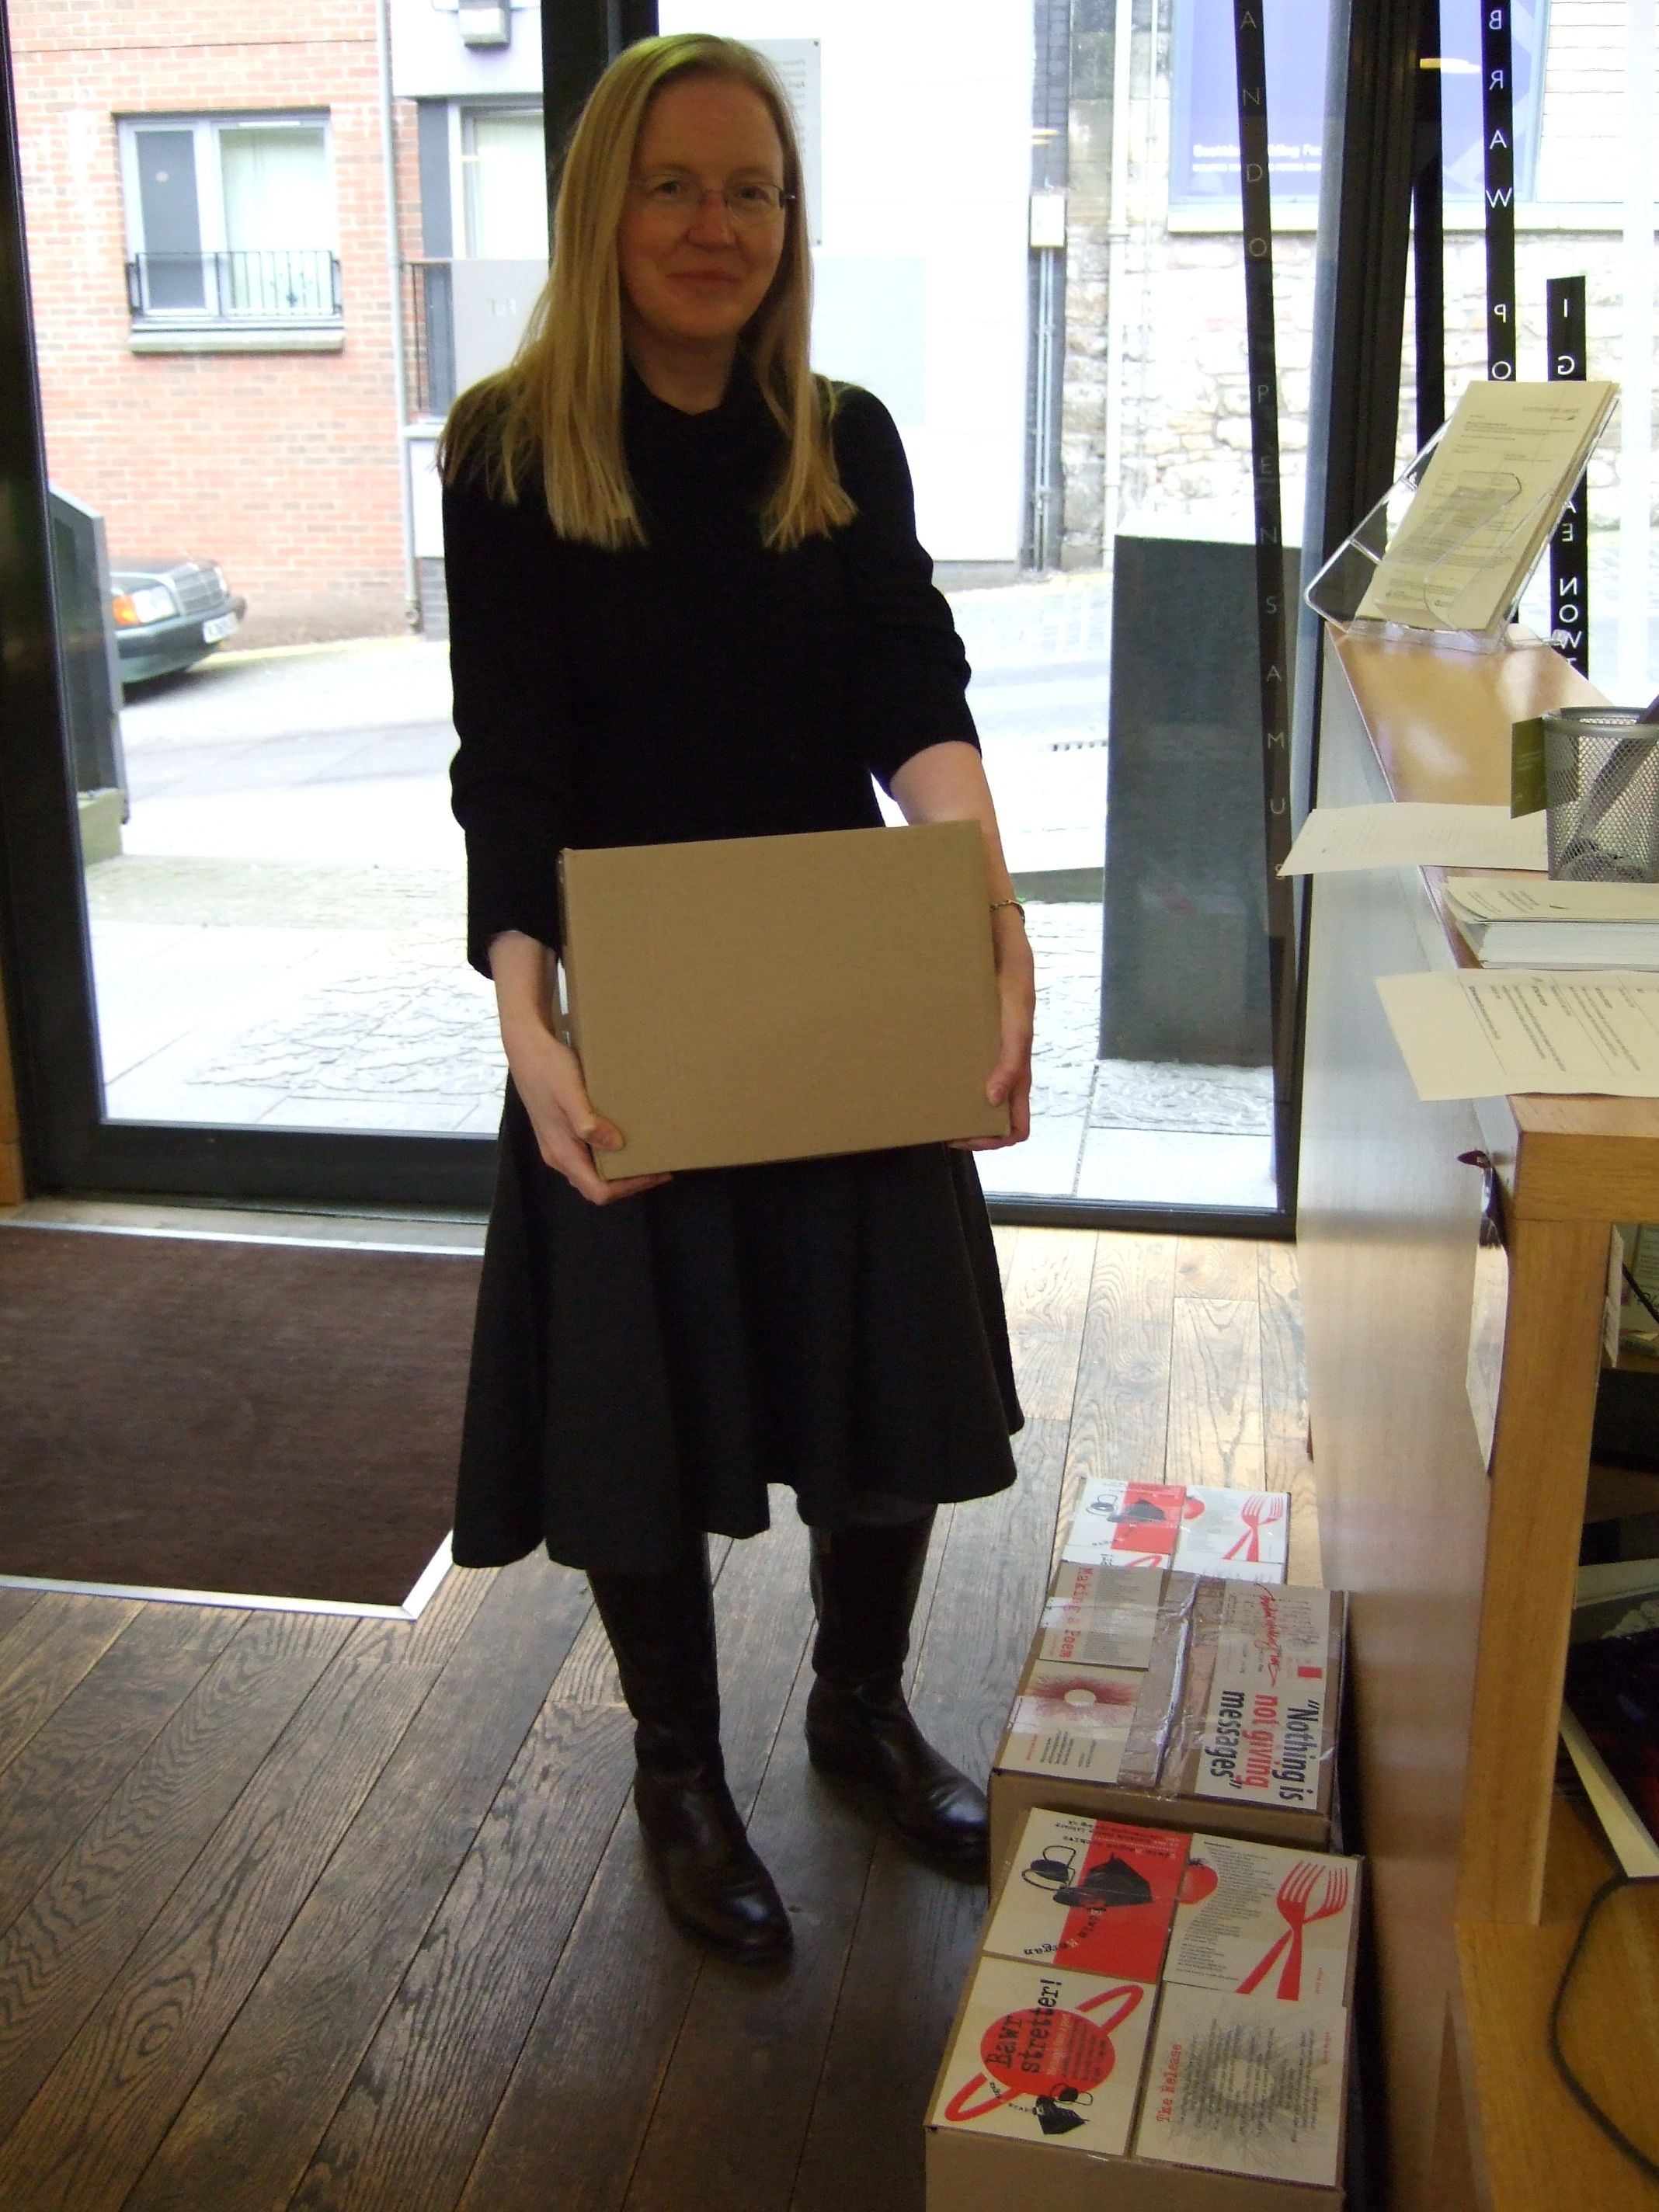 Julie receives another Edwin Morgan delivery: bookmarks!